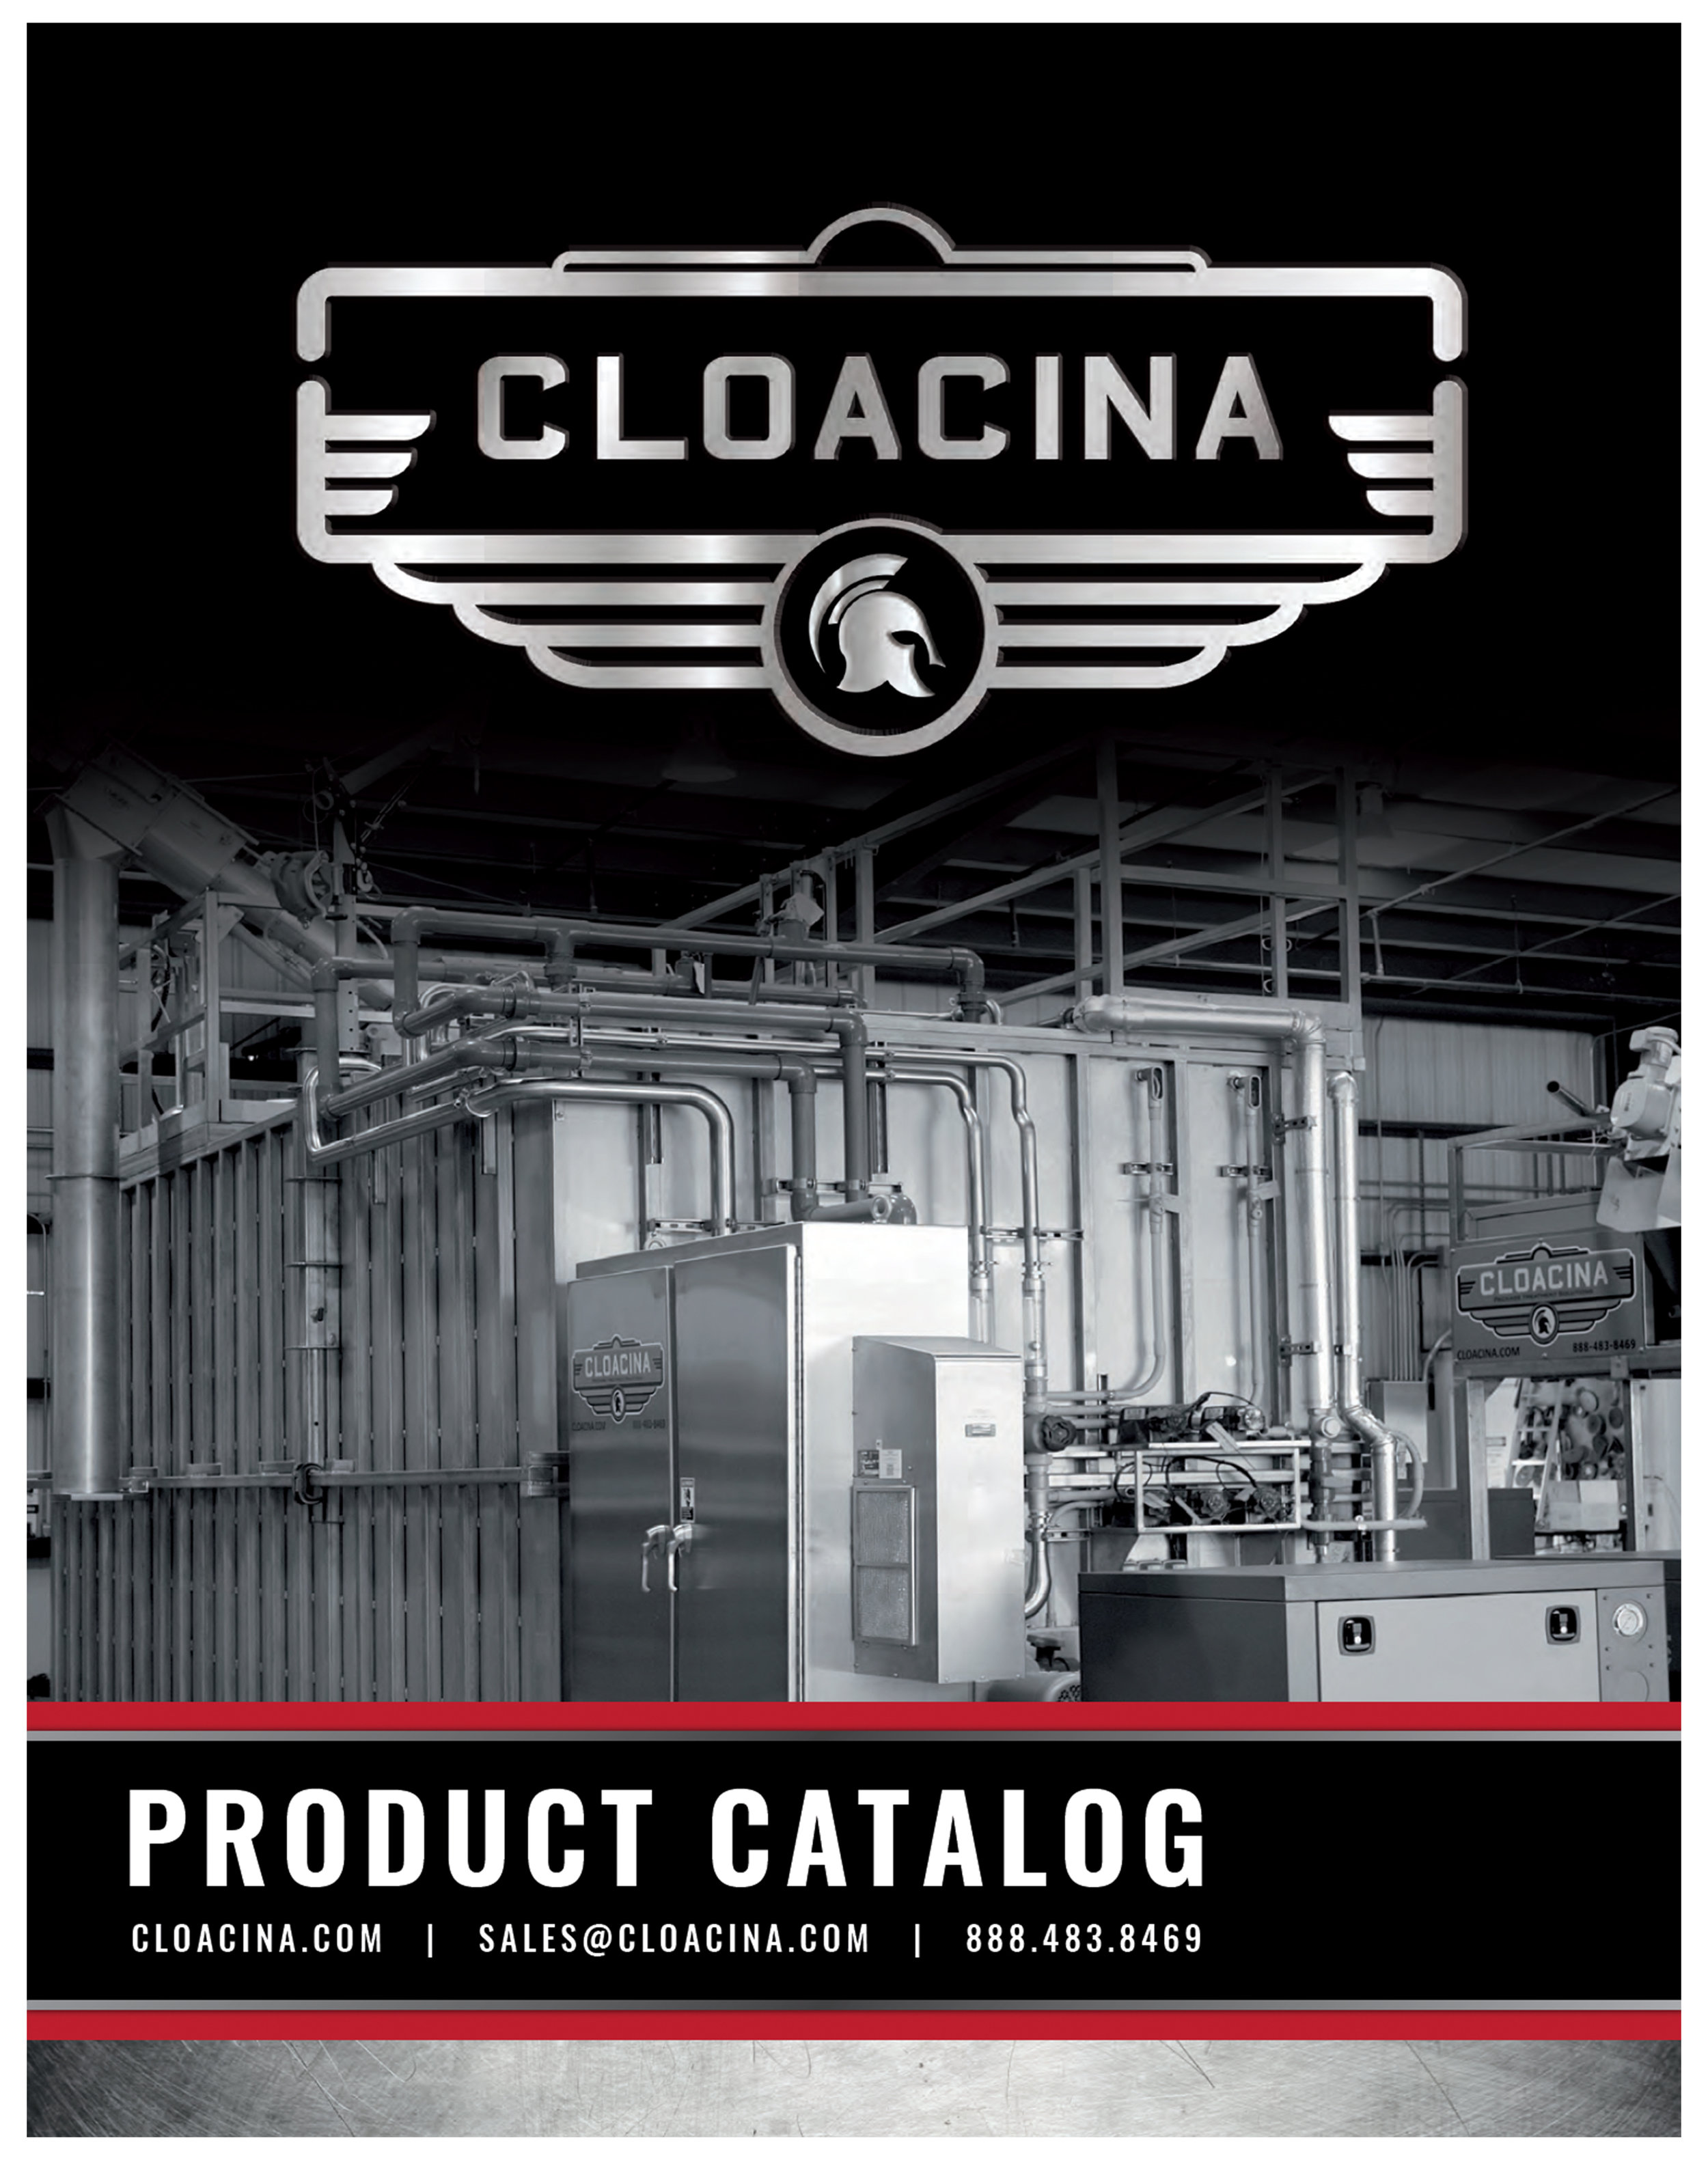 cloacina product catalog.jpg